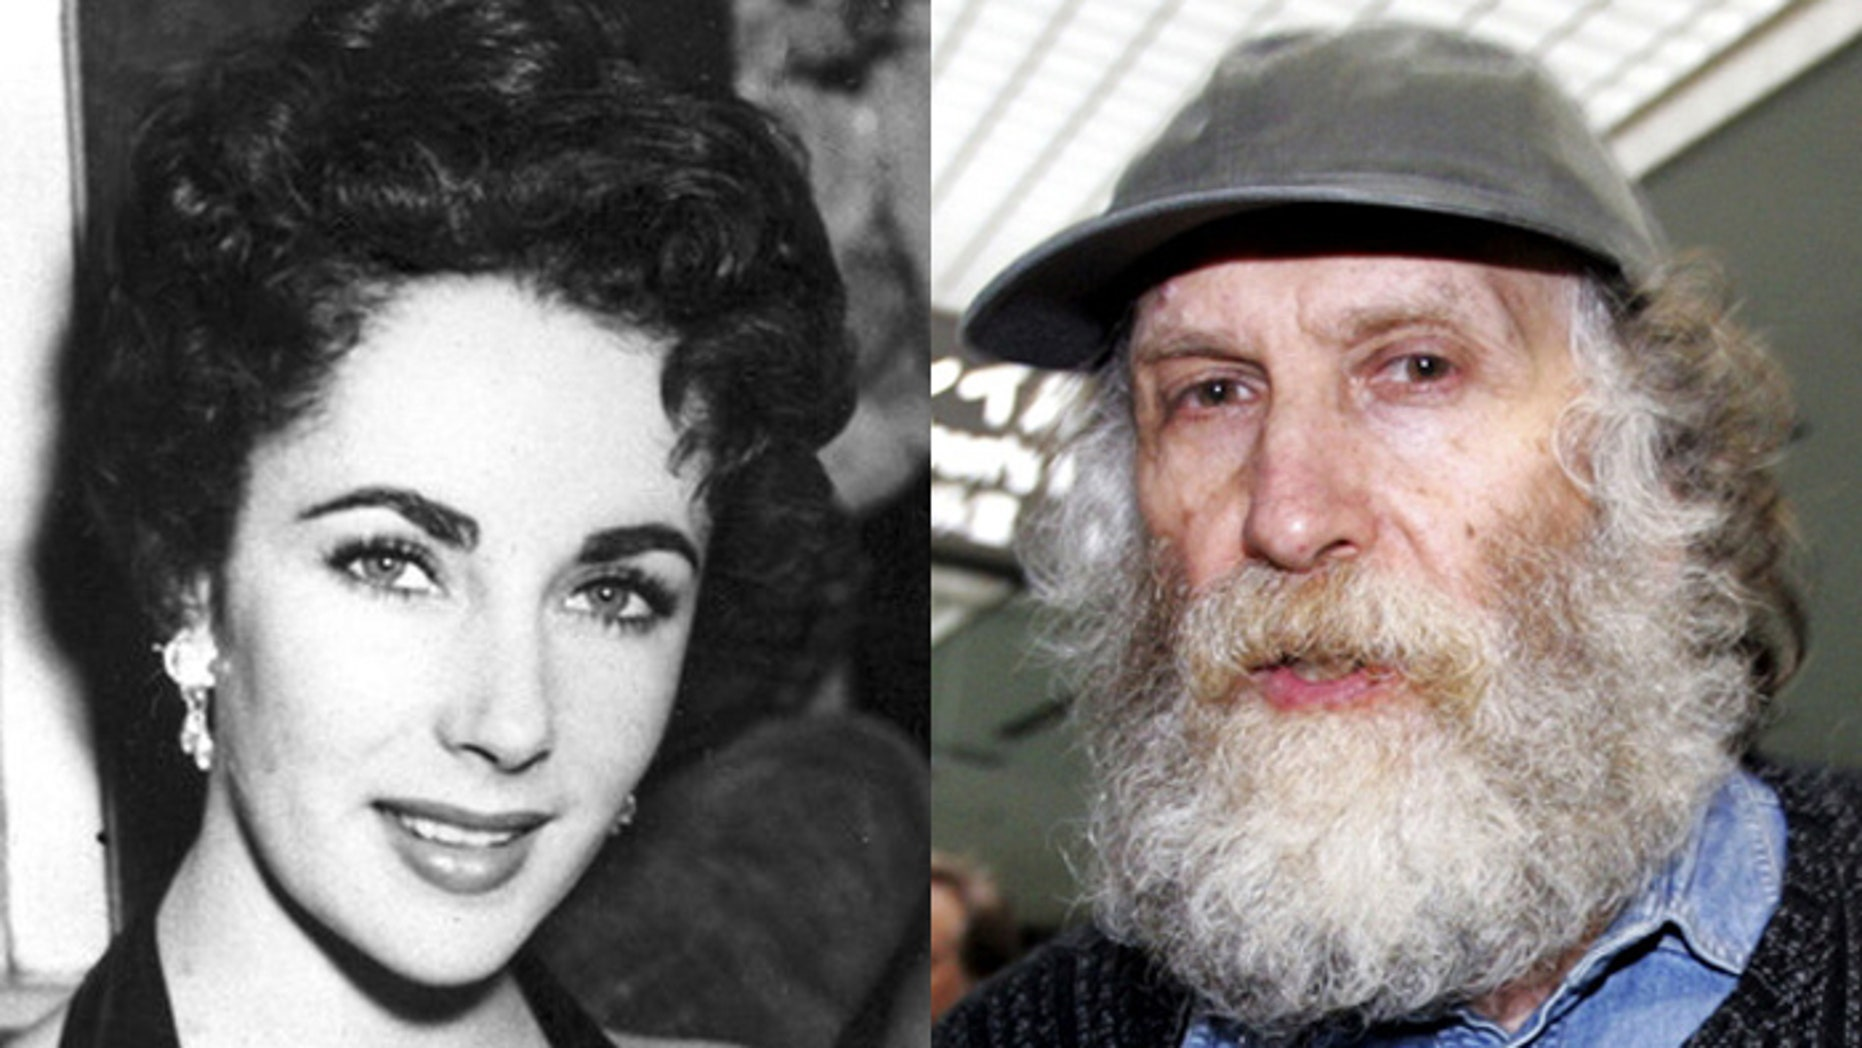 Elizabeth Taylor tried to renounce her citizenship, and chess master Bobby Fischer succeeded.